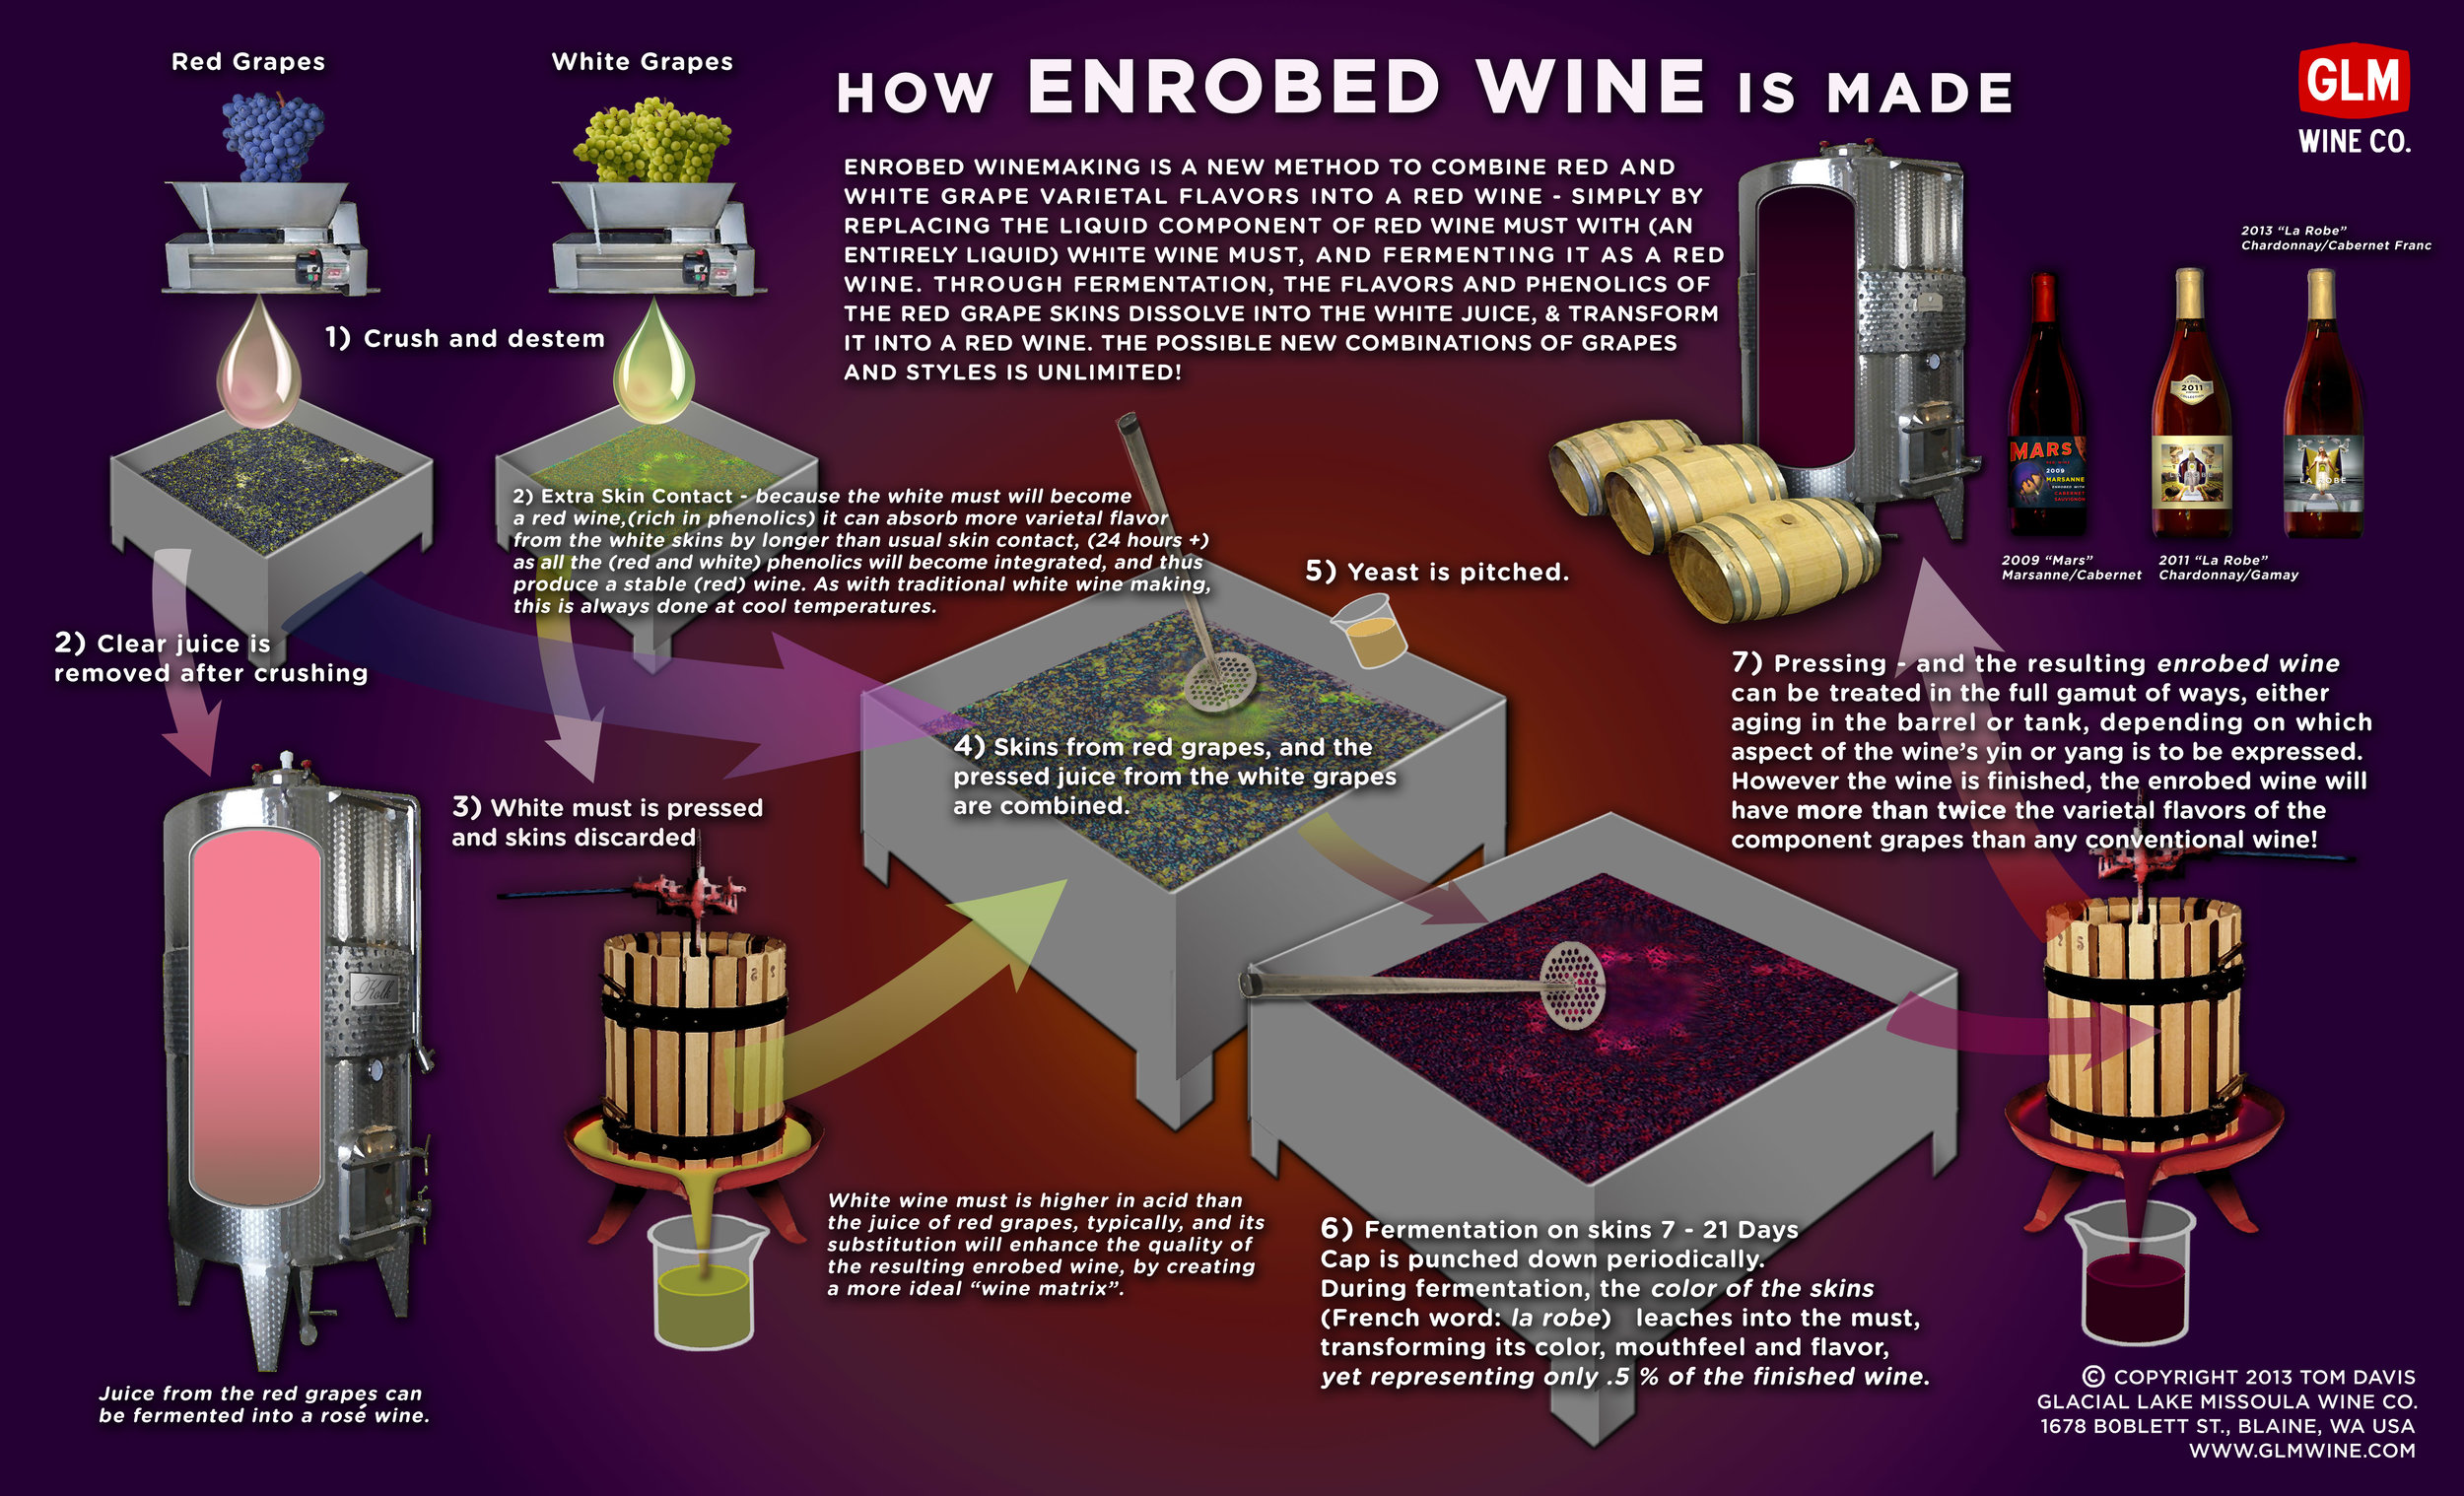 How Enrobed Wine is Made (Click to Enlarge)